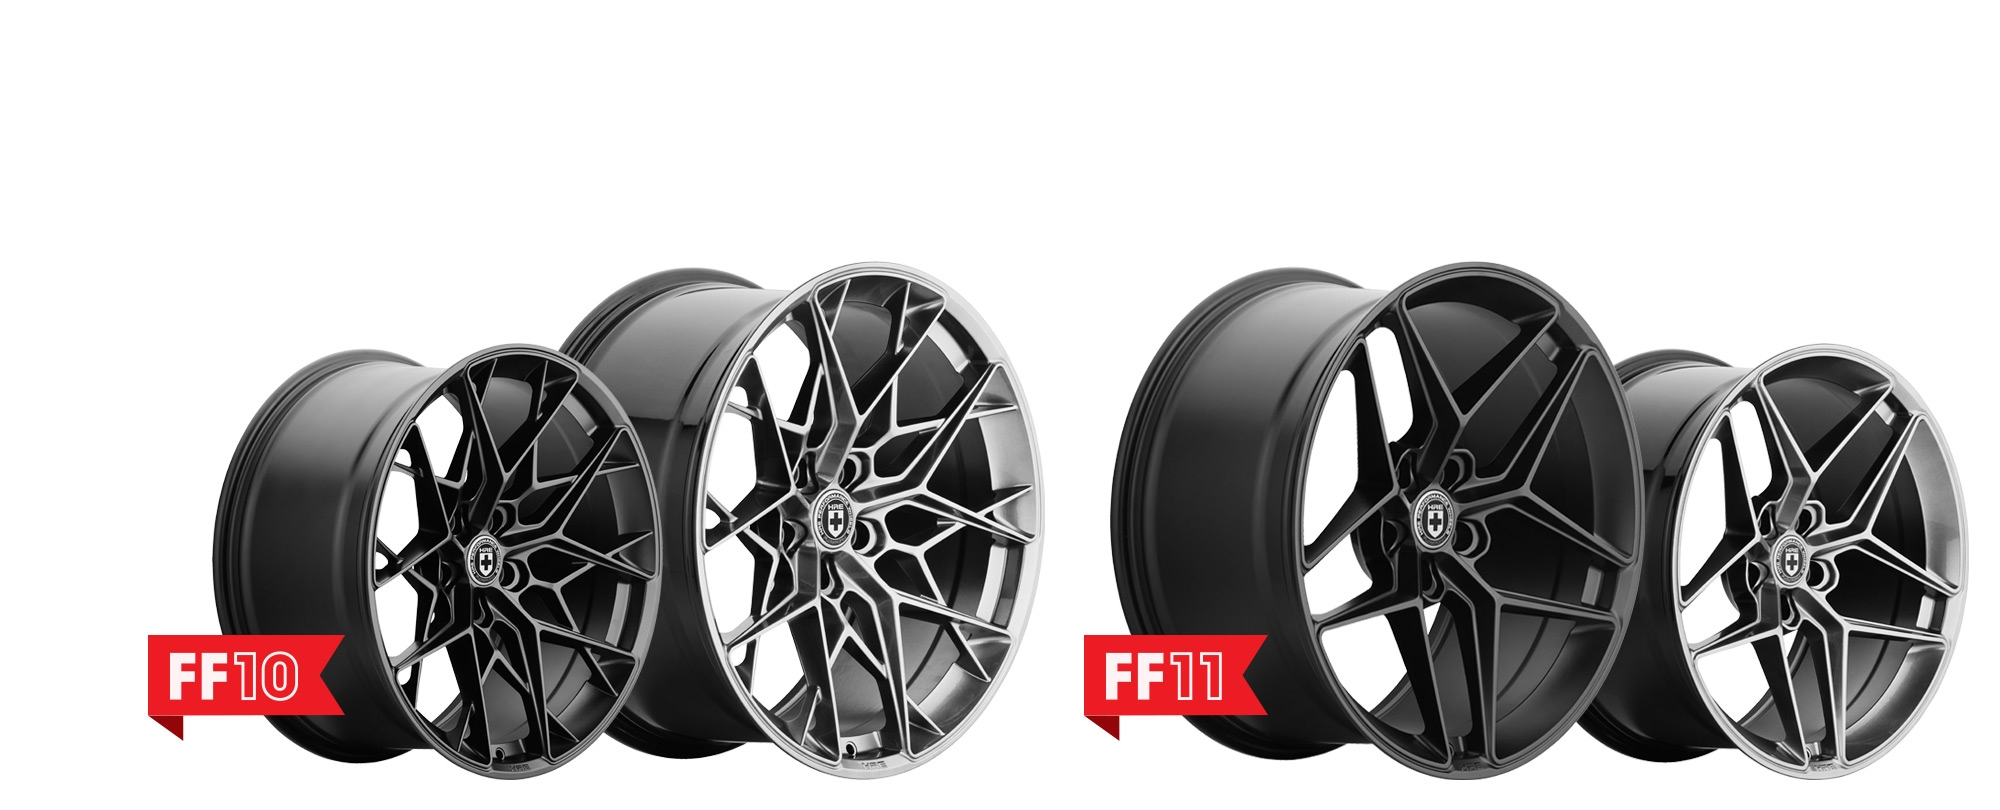 The World's Best Custom Forged Wheels for Motorsport, Performance